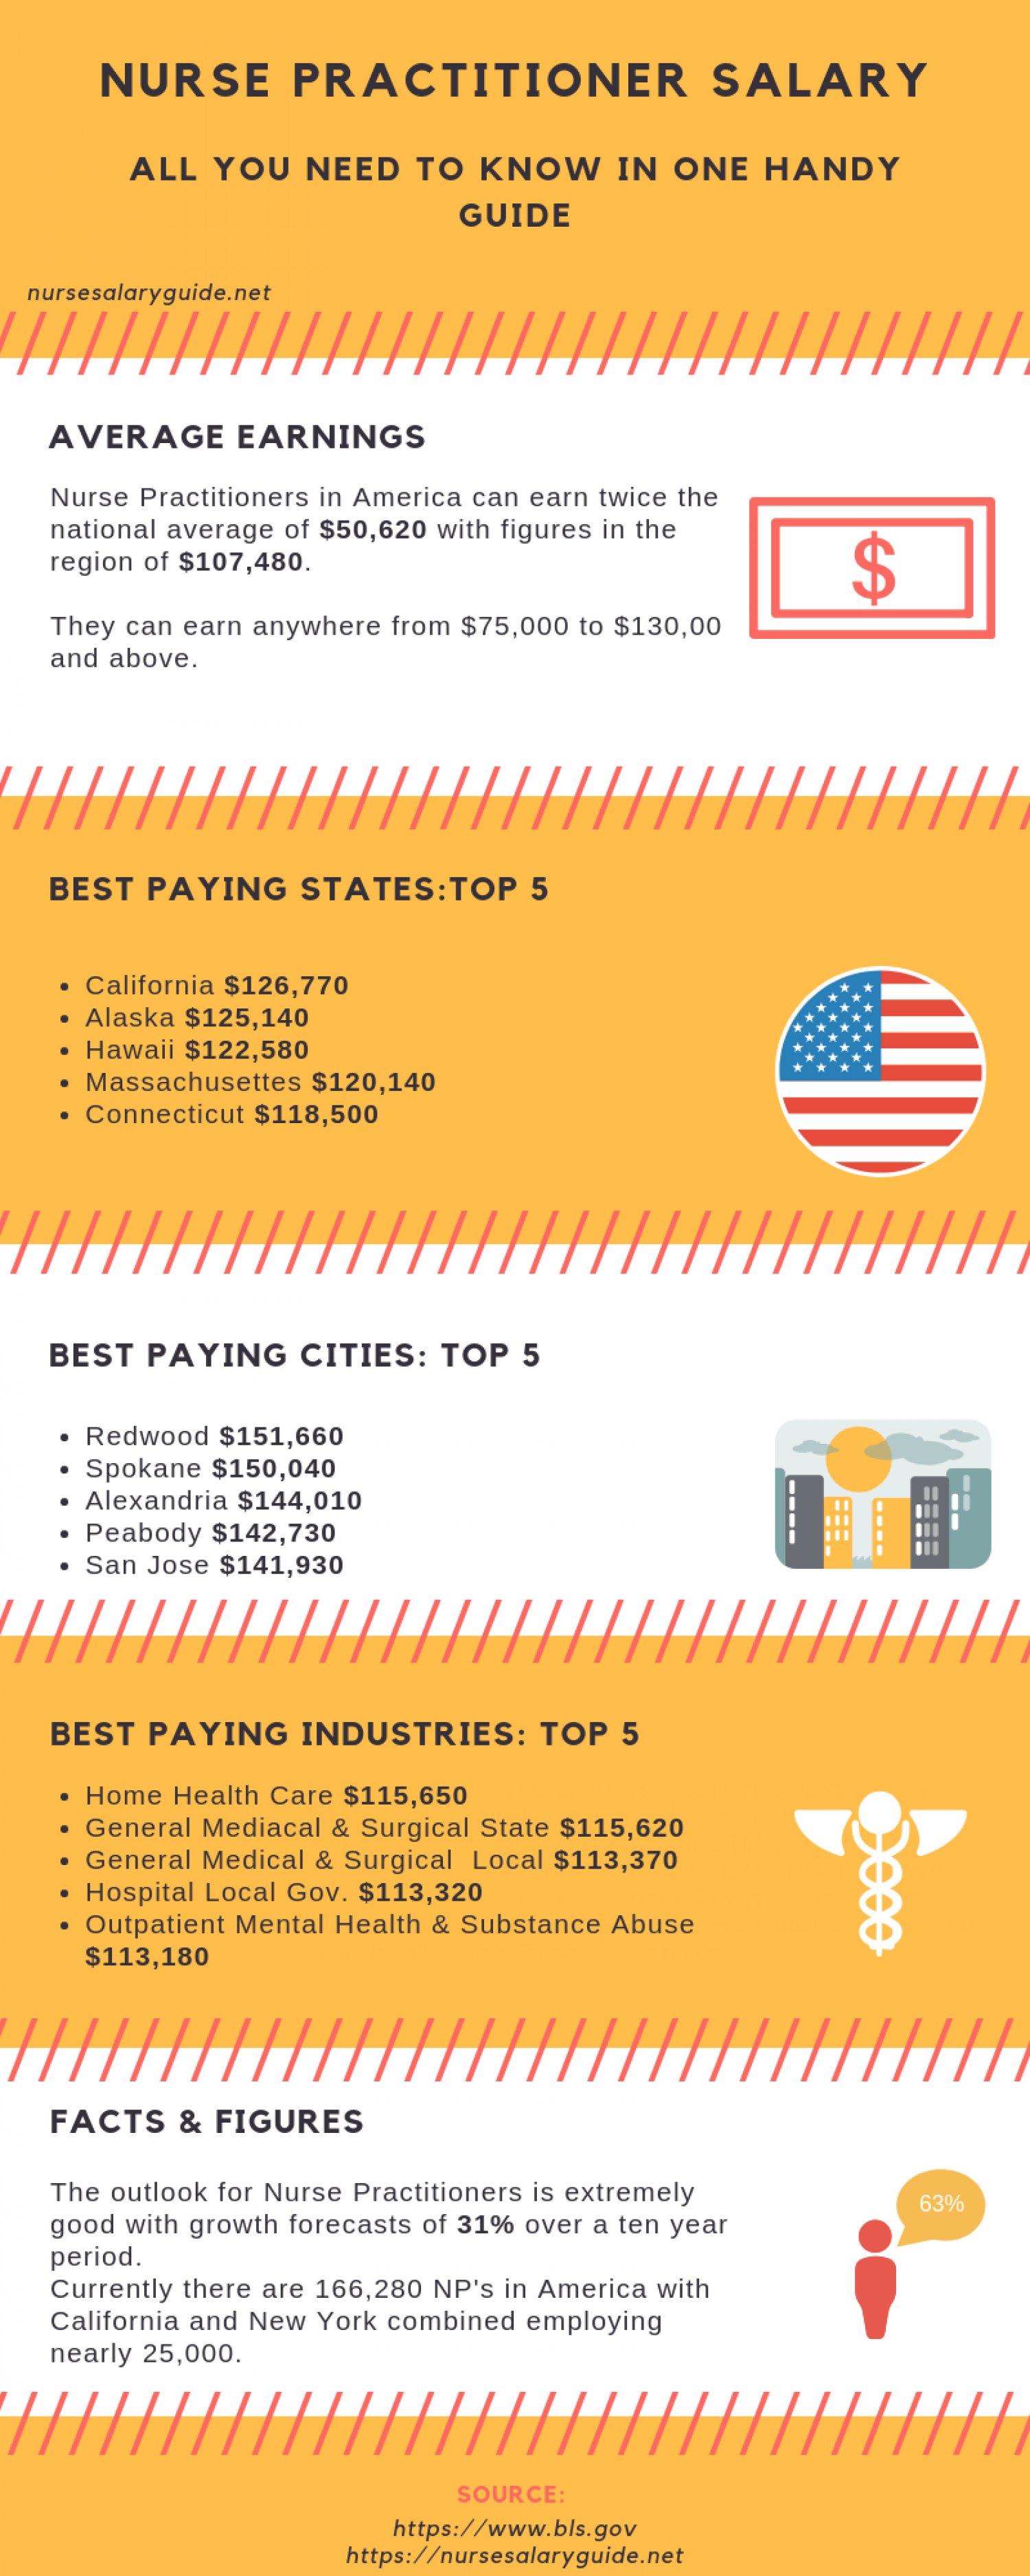 Salary Guide for Nurse Practitioner Infographic